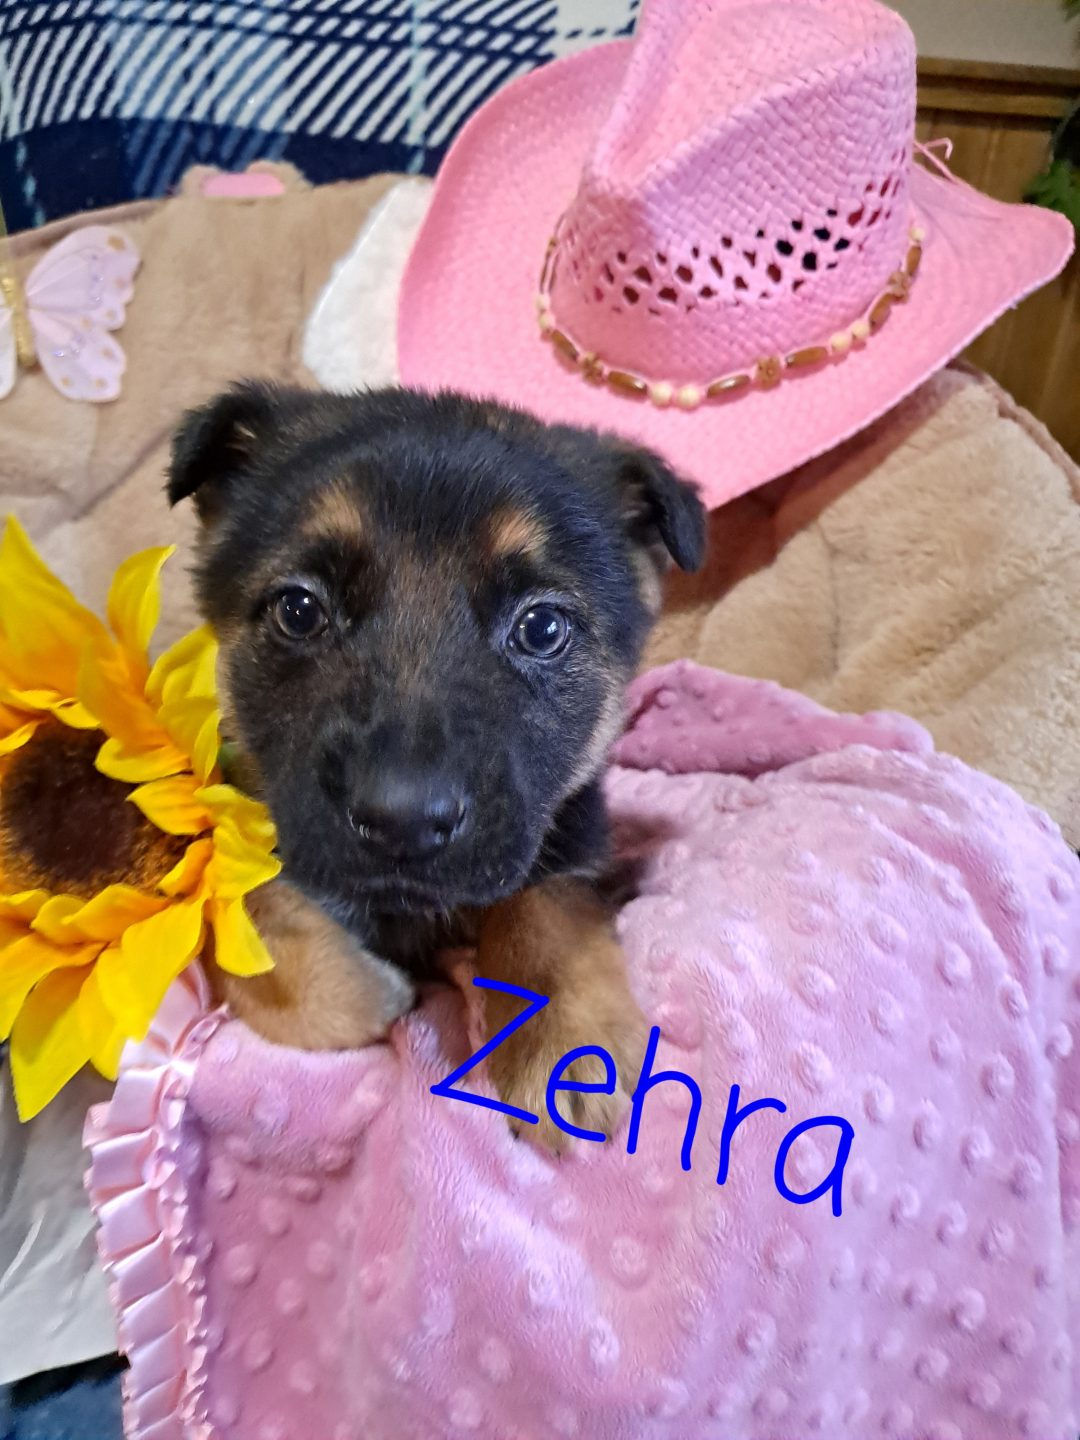 Zehra - AKC German Shepherd puppy for sale at New Haven, Indiana